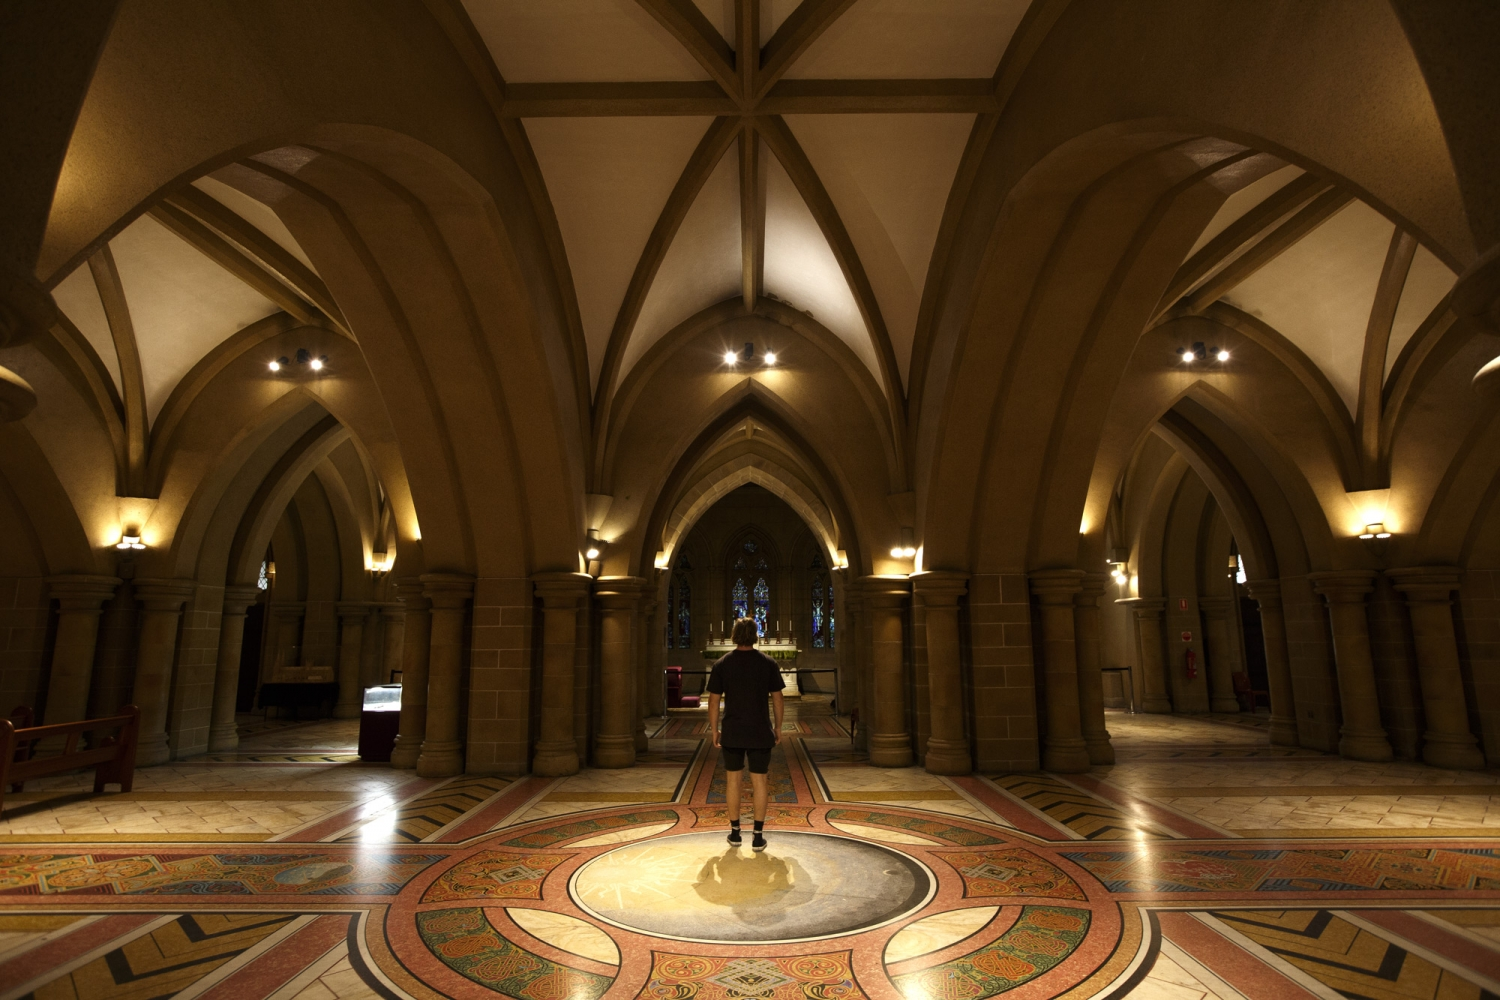 Interior of building with vaulted ceiling and patterned tiled floor.